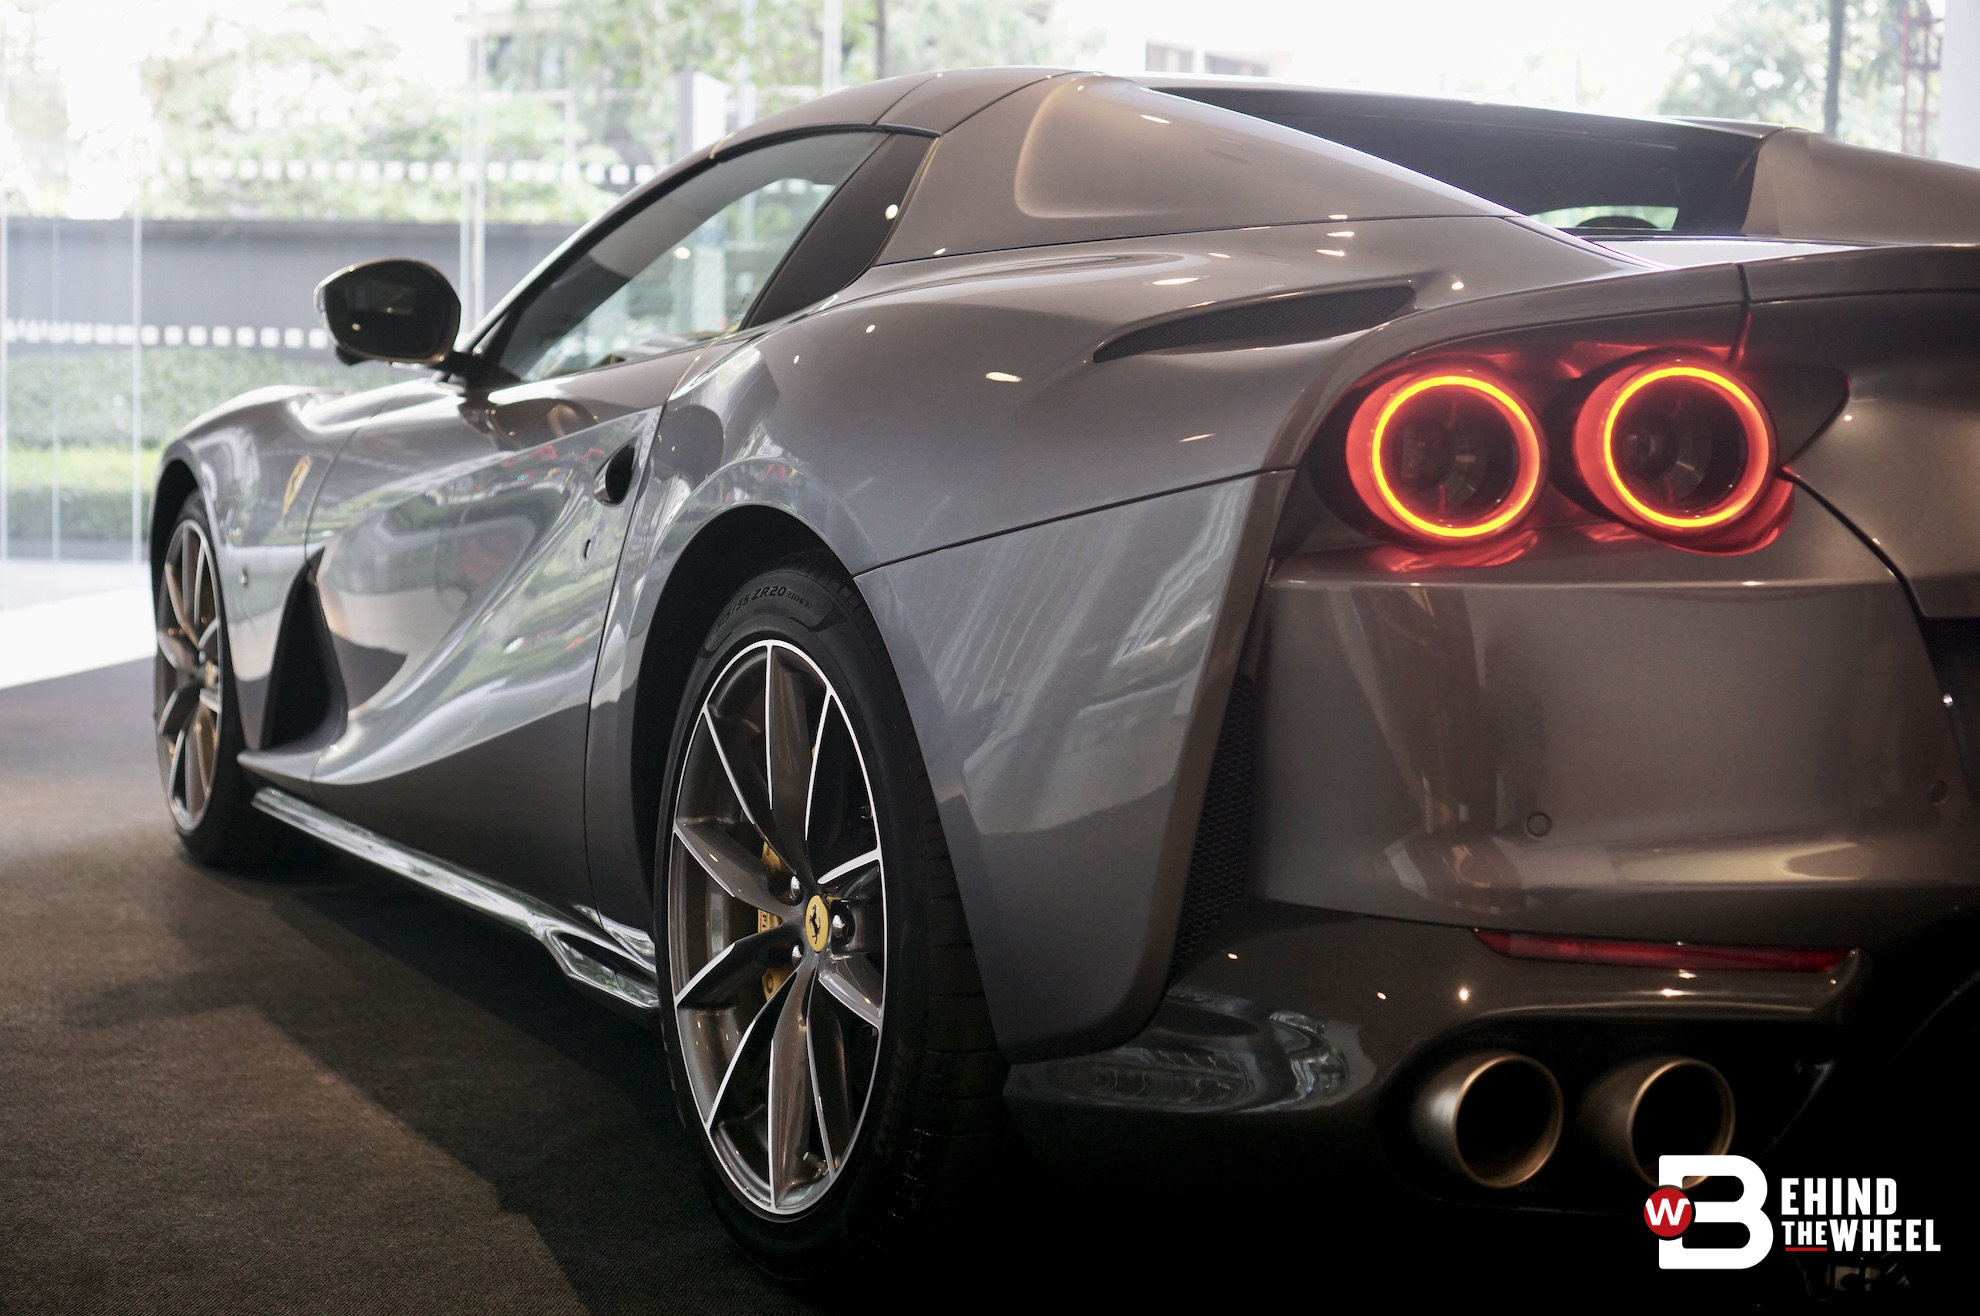 The Ferrari 812 Gts With A V12 Engine Is A Superfast Convertible Btw Rojak Daily